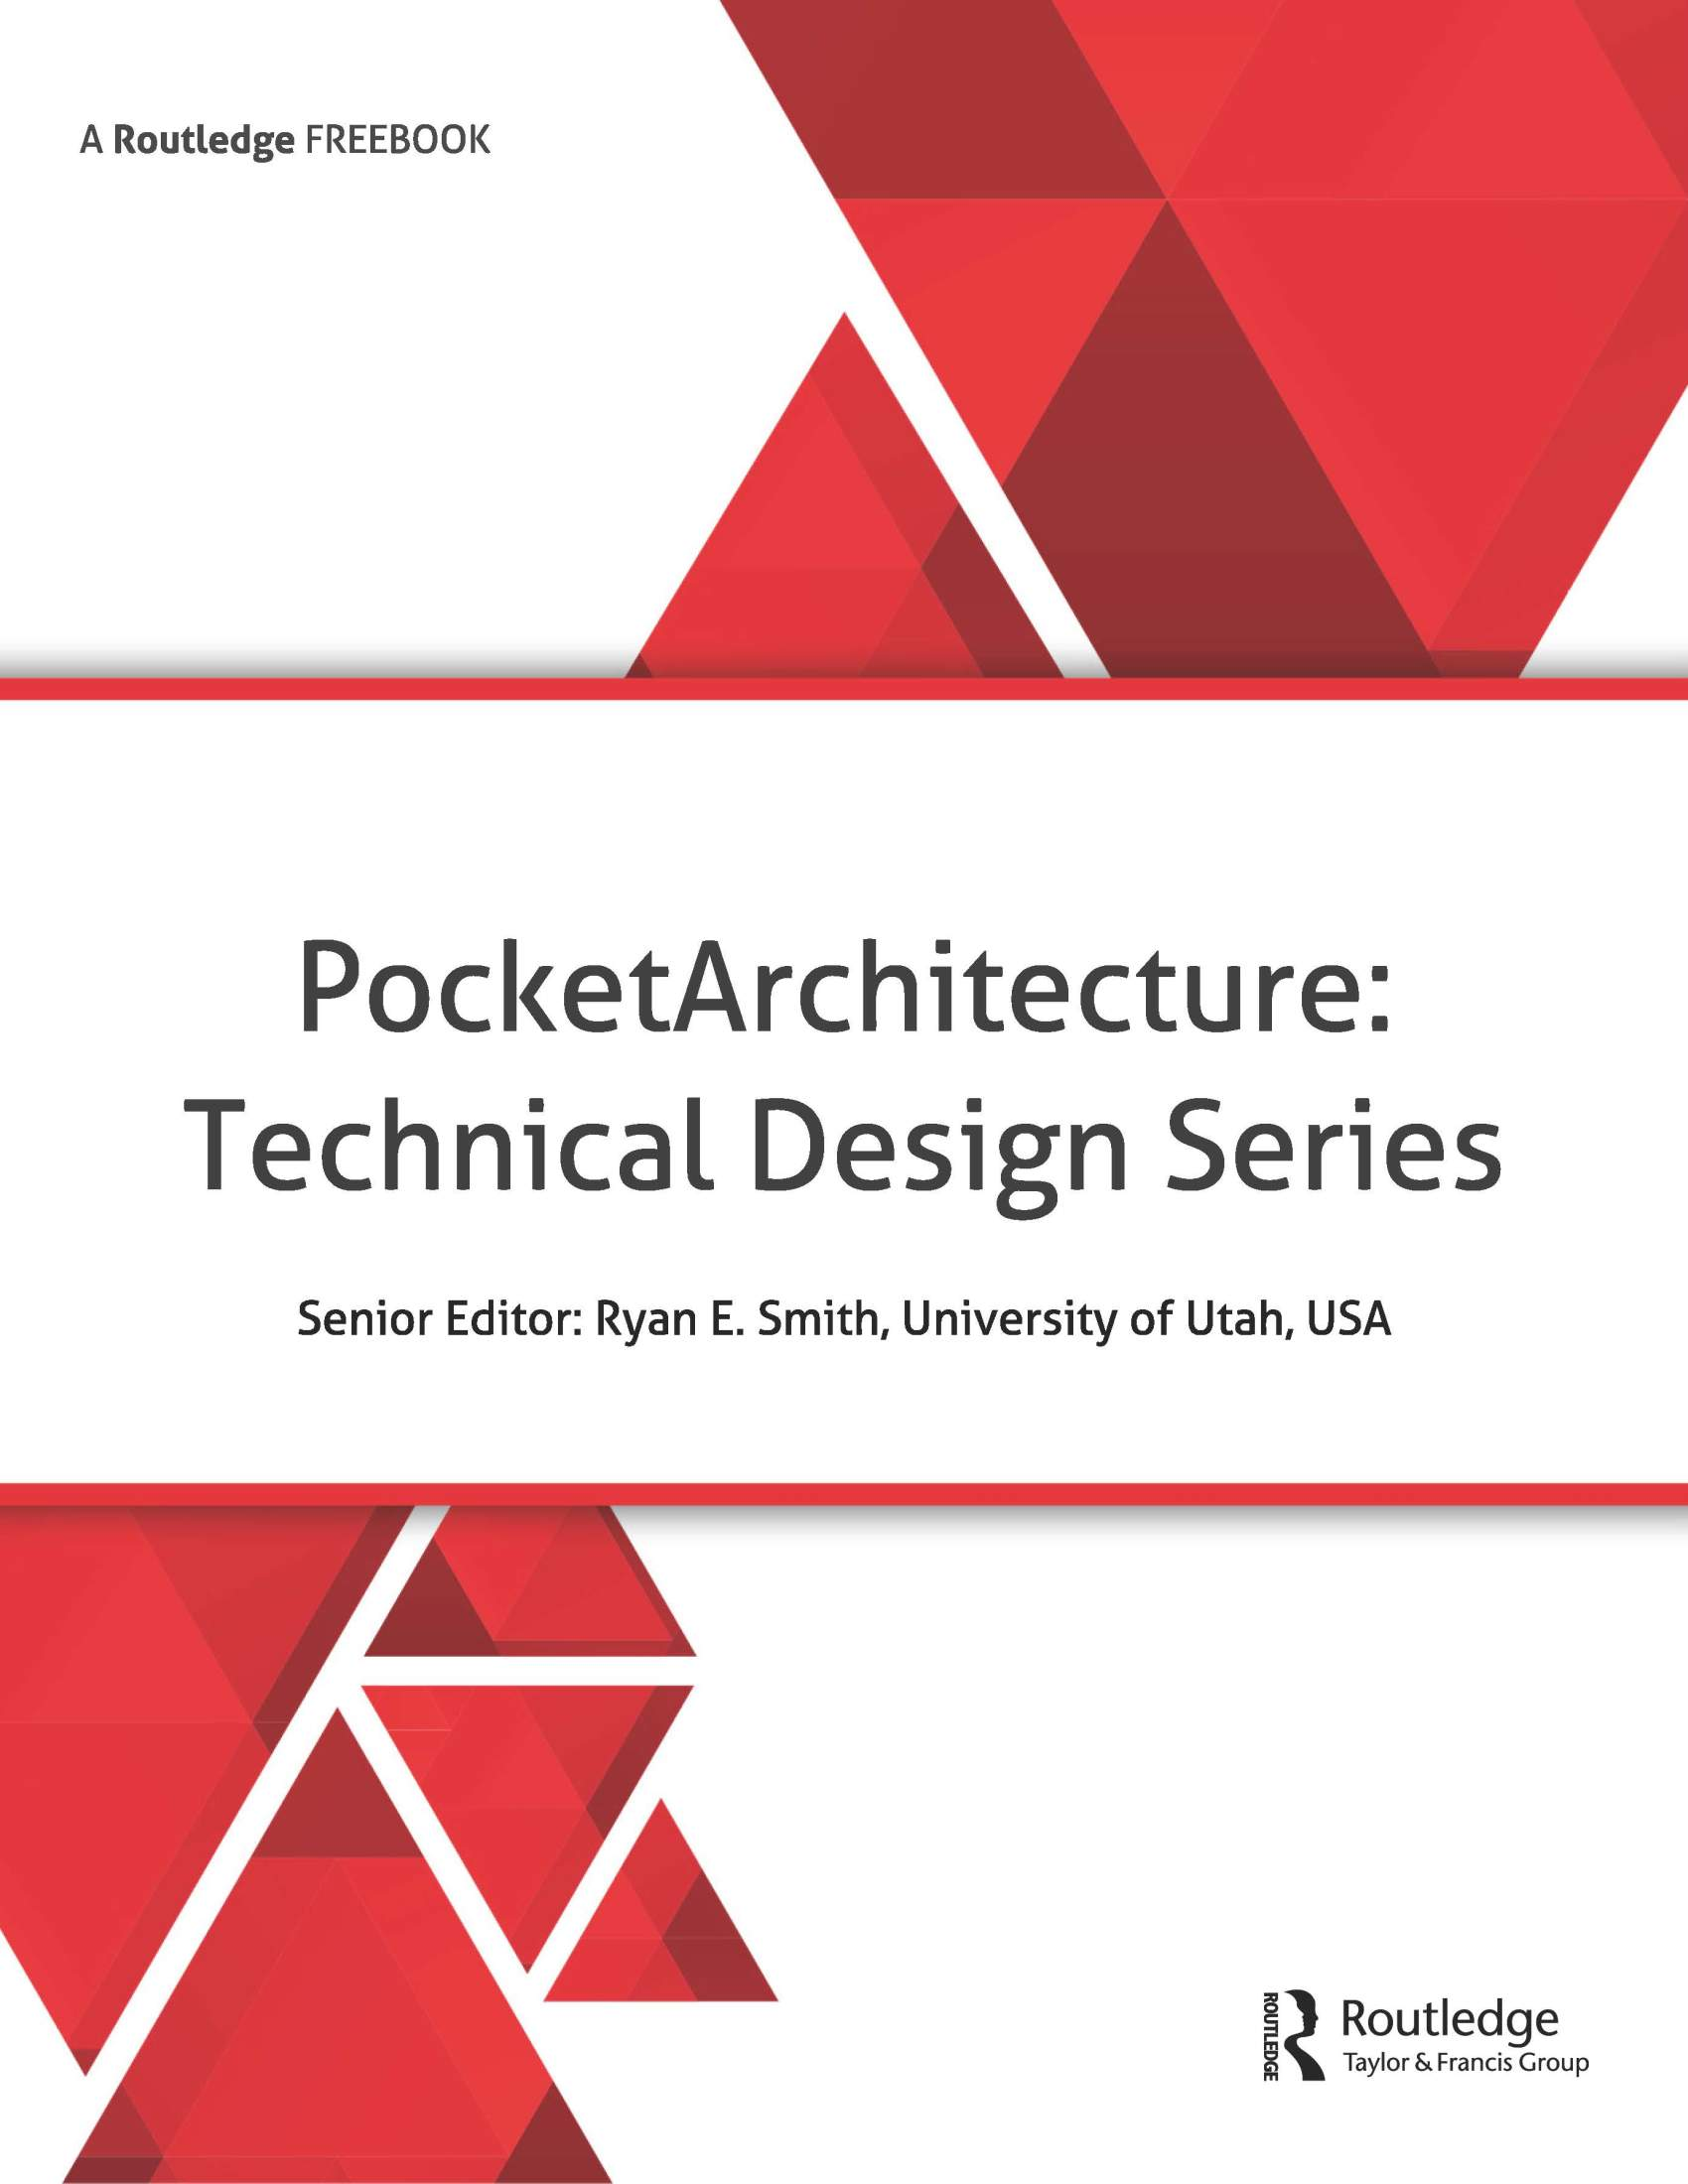 PocketArchitecture FreeBook Cover